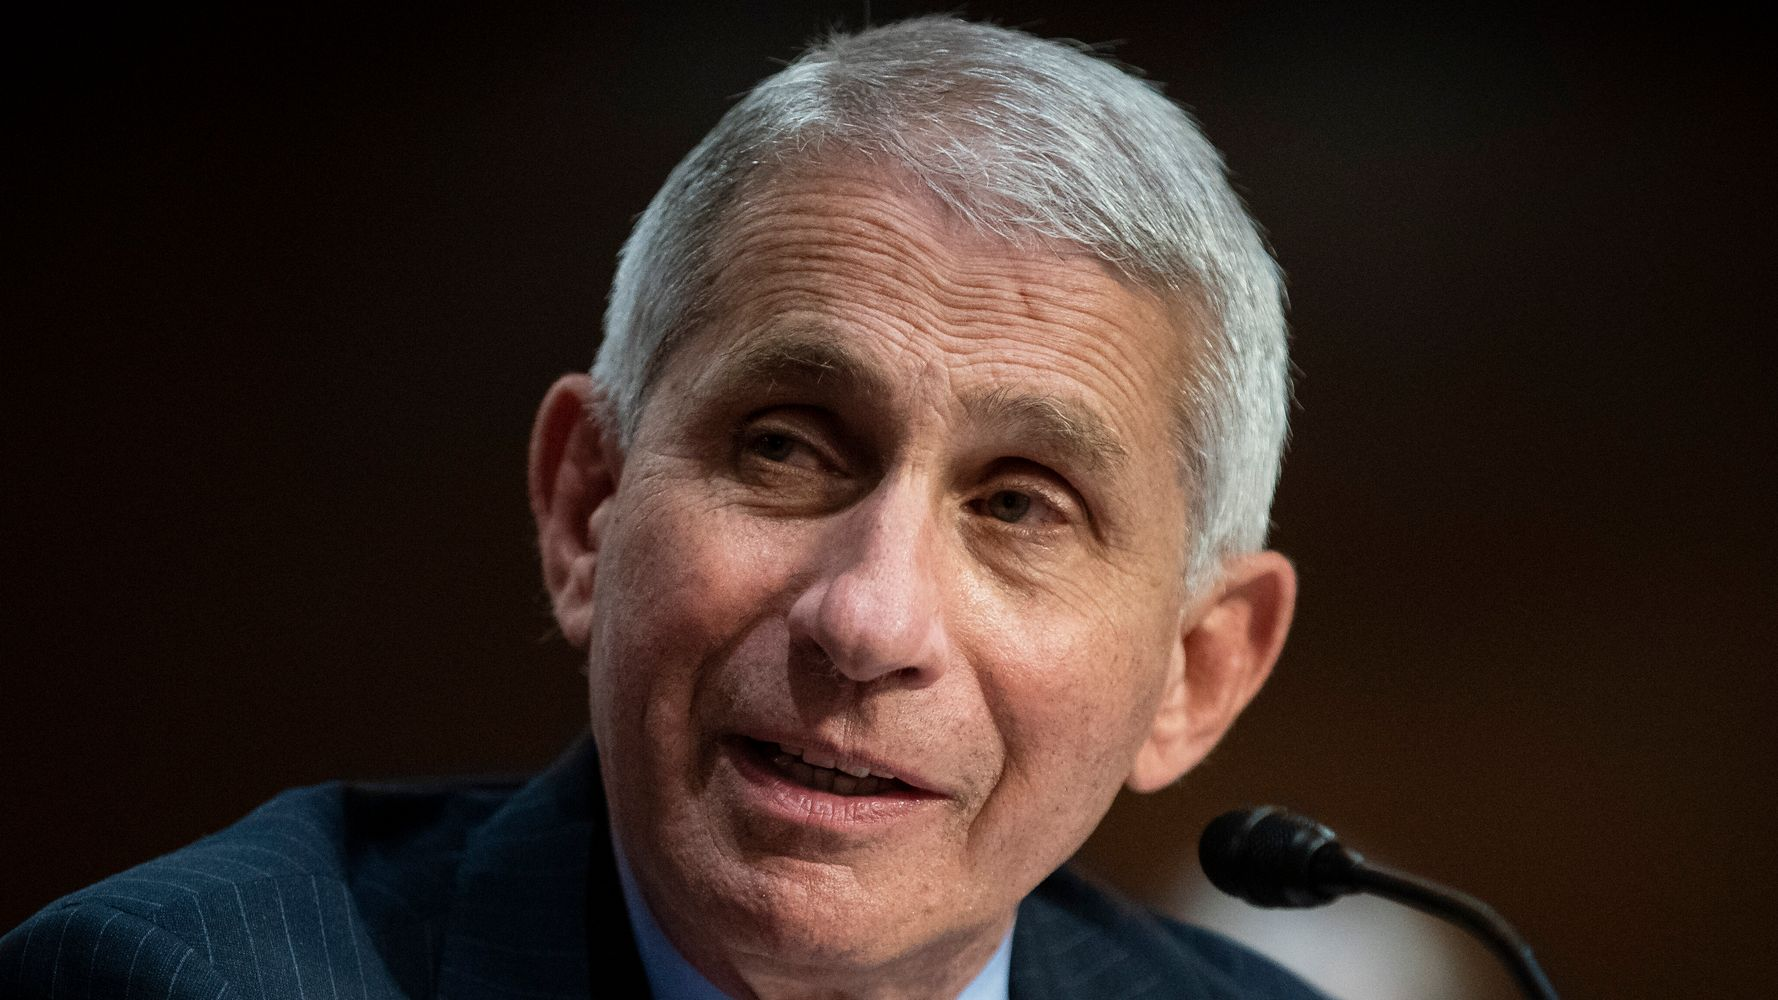 'What Leadership Looks Like': Old Fauci Pic Resurfaces Amid White House Attacks